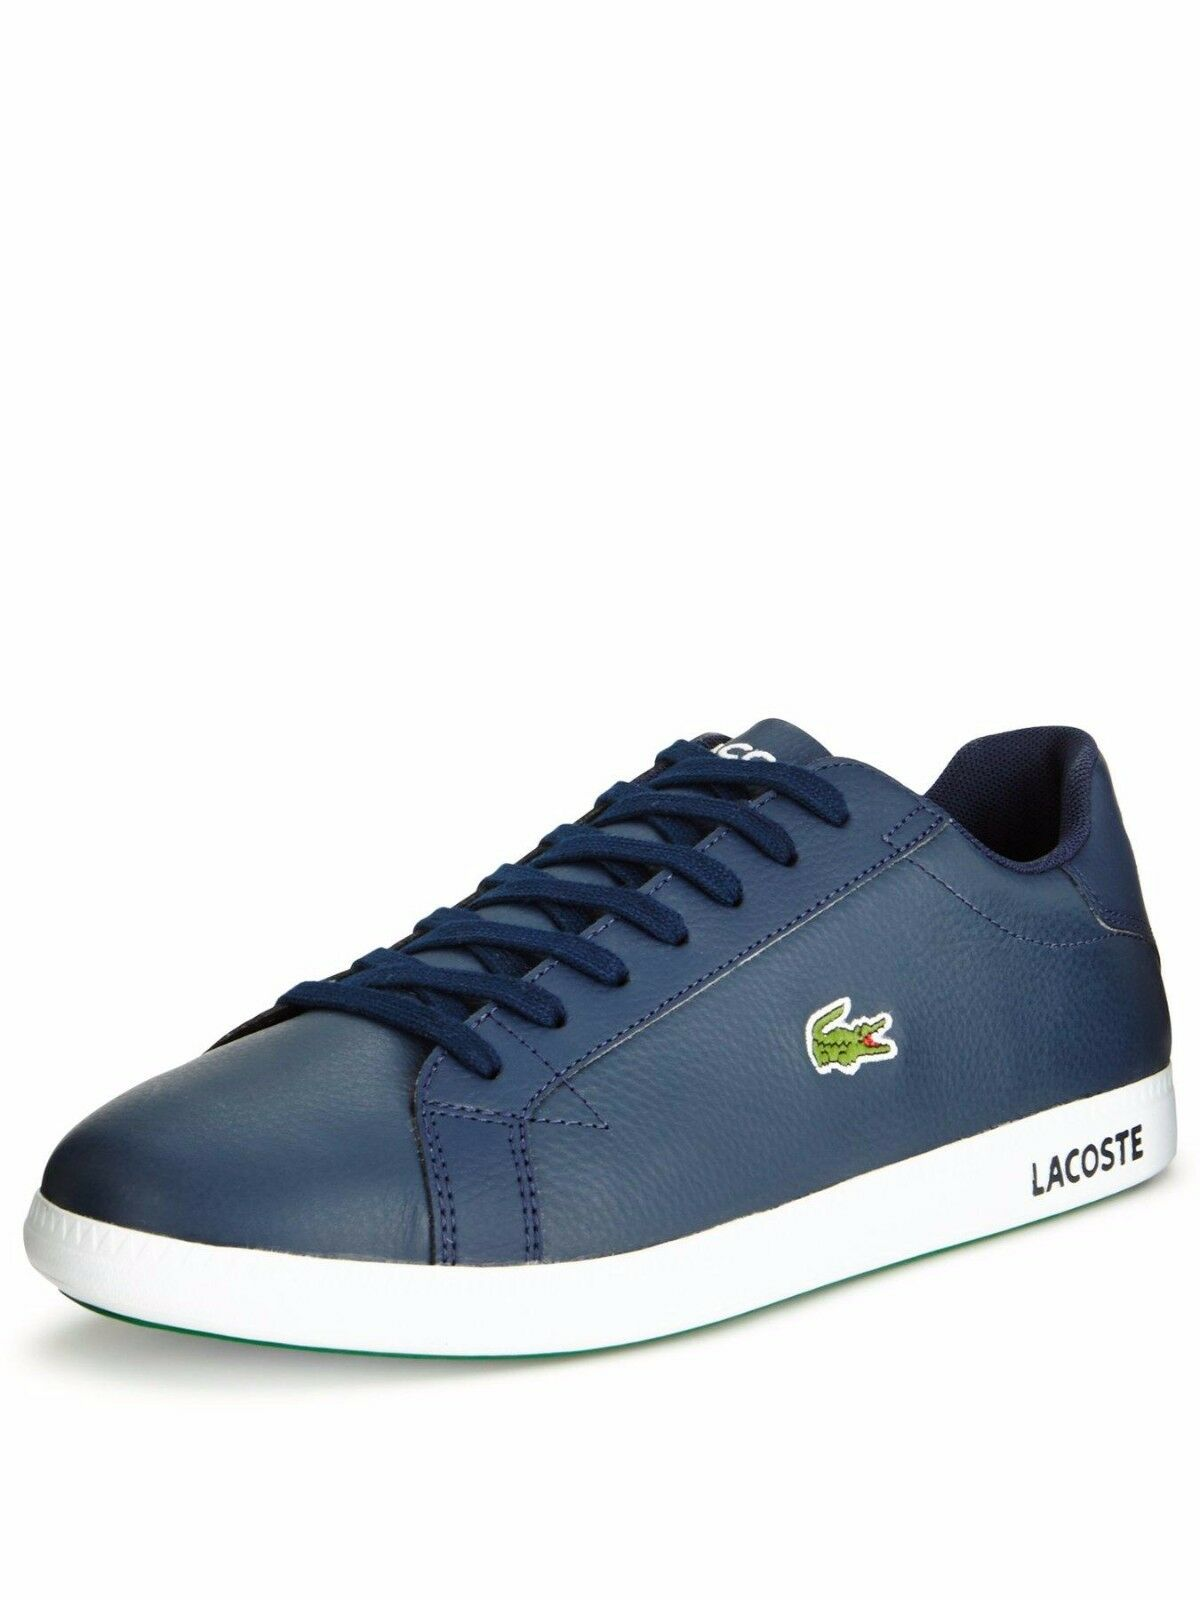 LACOSTE GRADUATE NEW+BOXED LCR3 NAVY  Herren TRAINERS NEW+BOXED GRADUATE SIZE 9,9.5,10,10.5 BARGAIN 759cc8